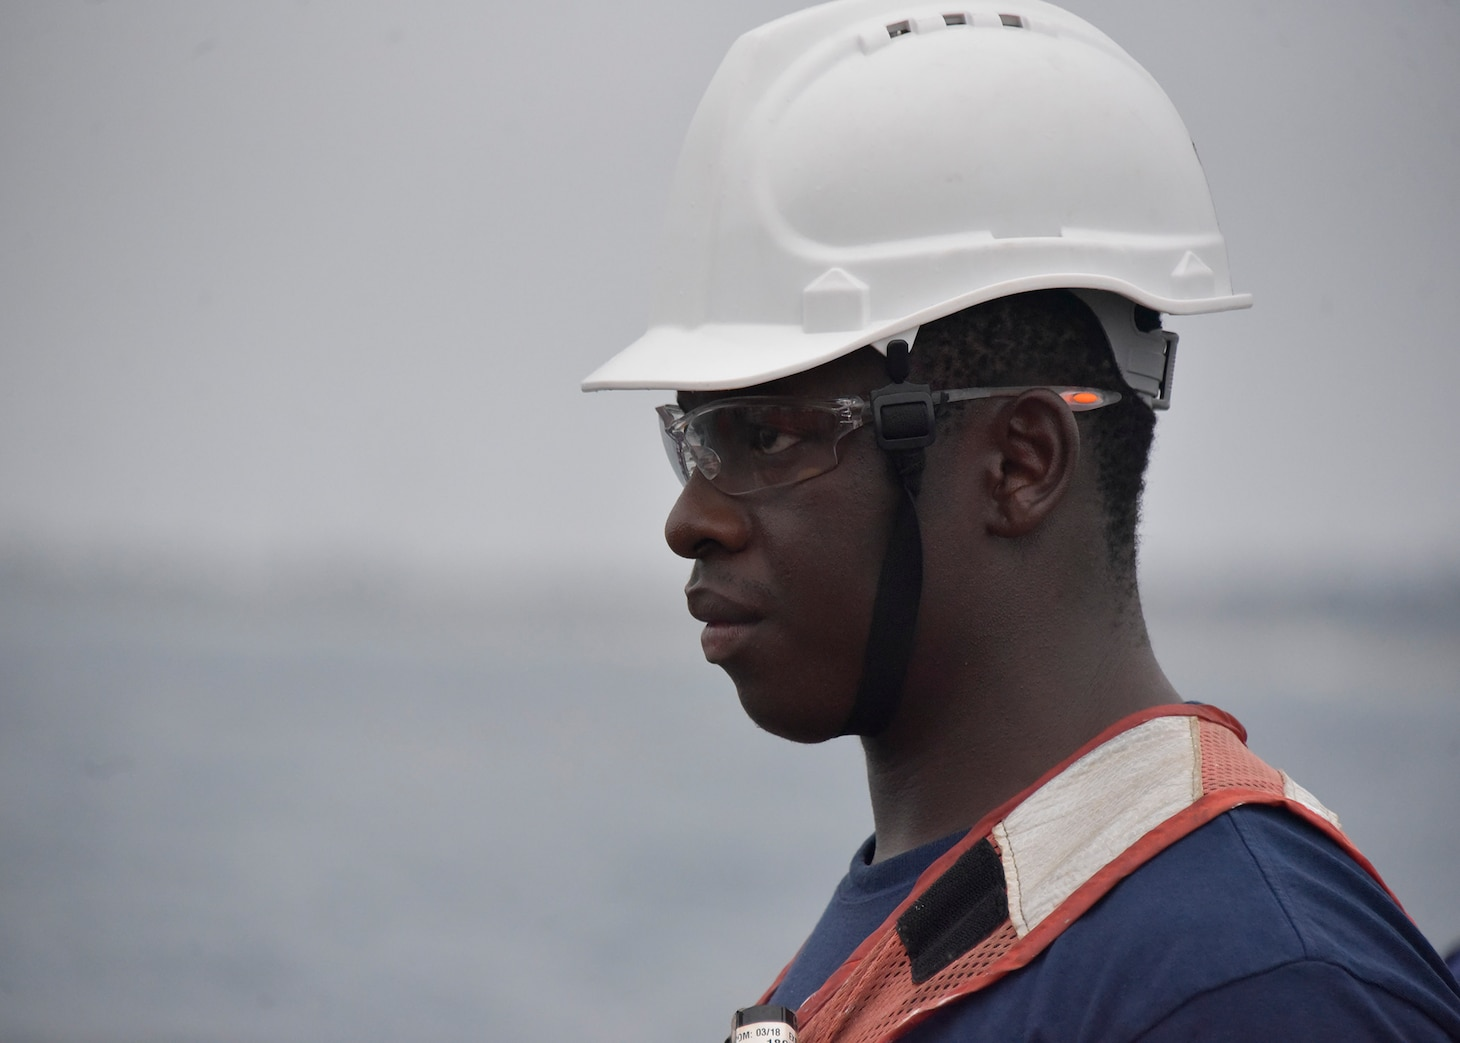 Ensign Panashe Mutumbo on the U.S. Coast Guard Cutter Thetis